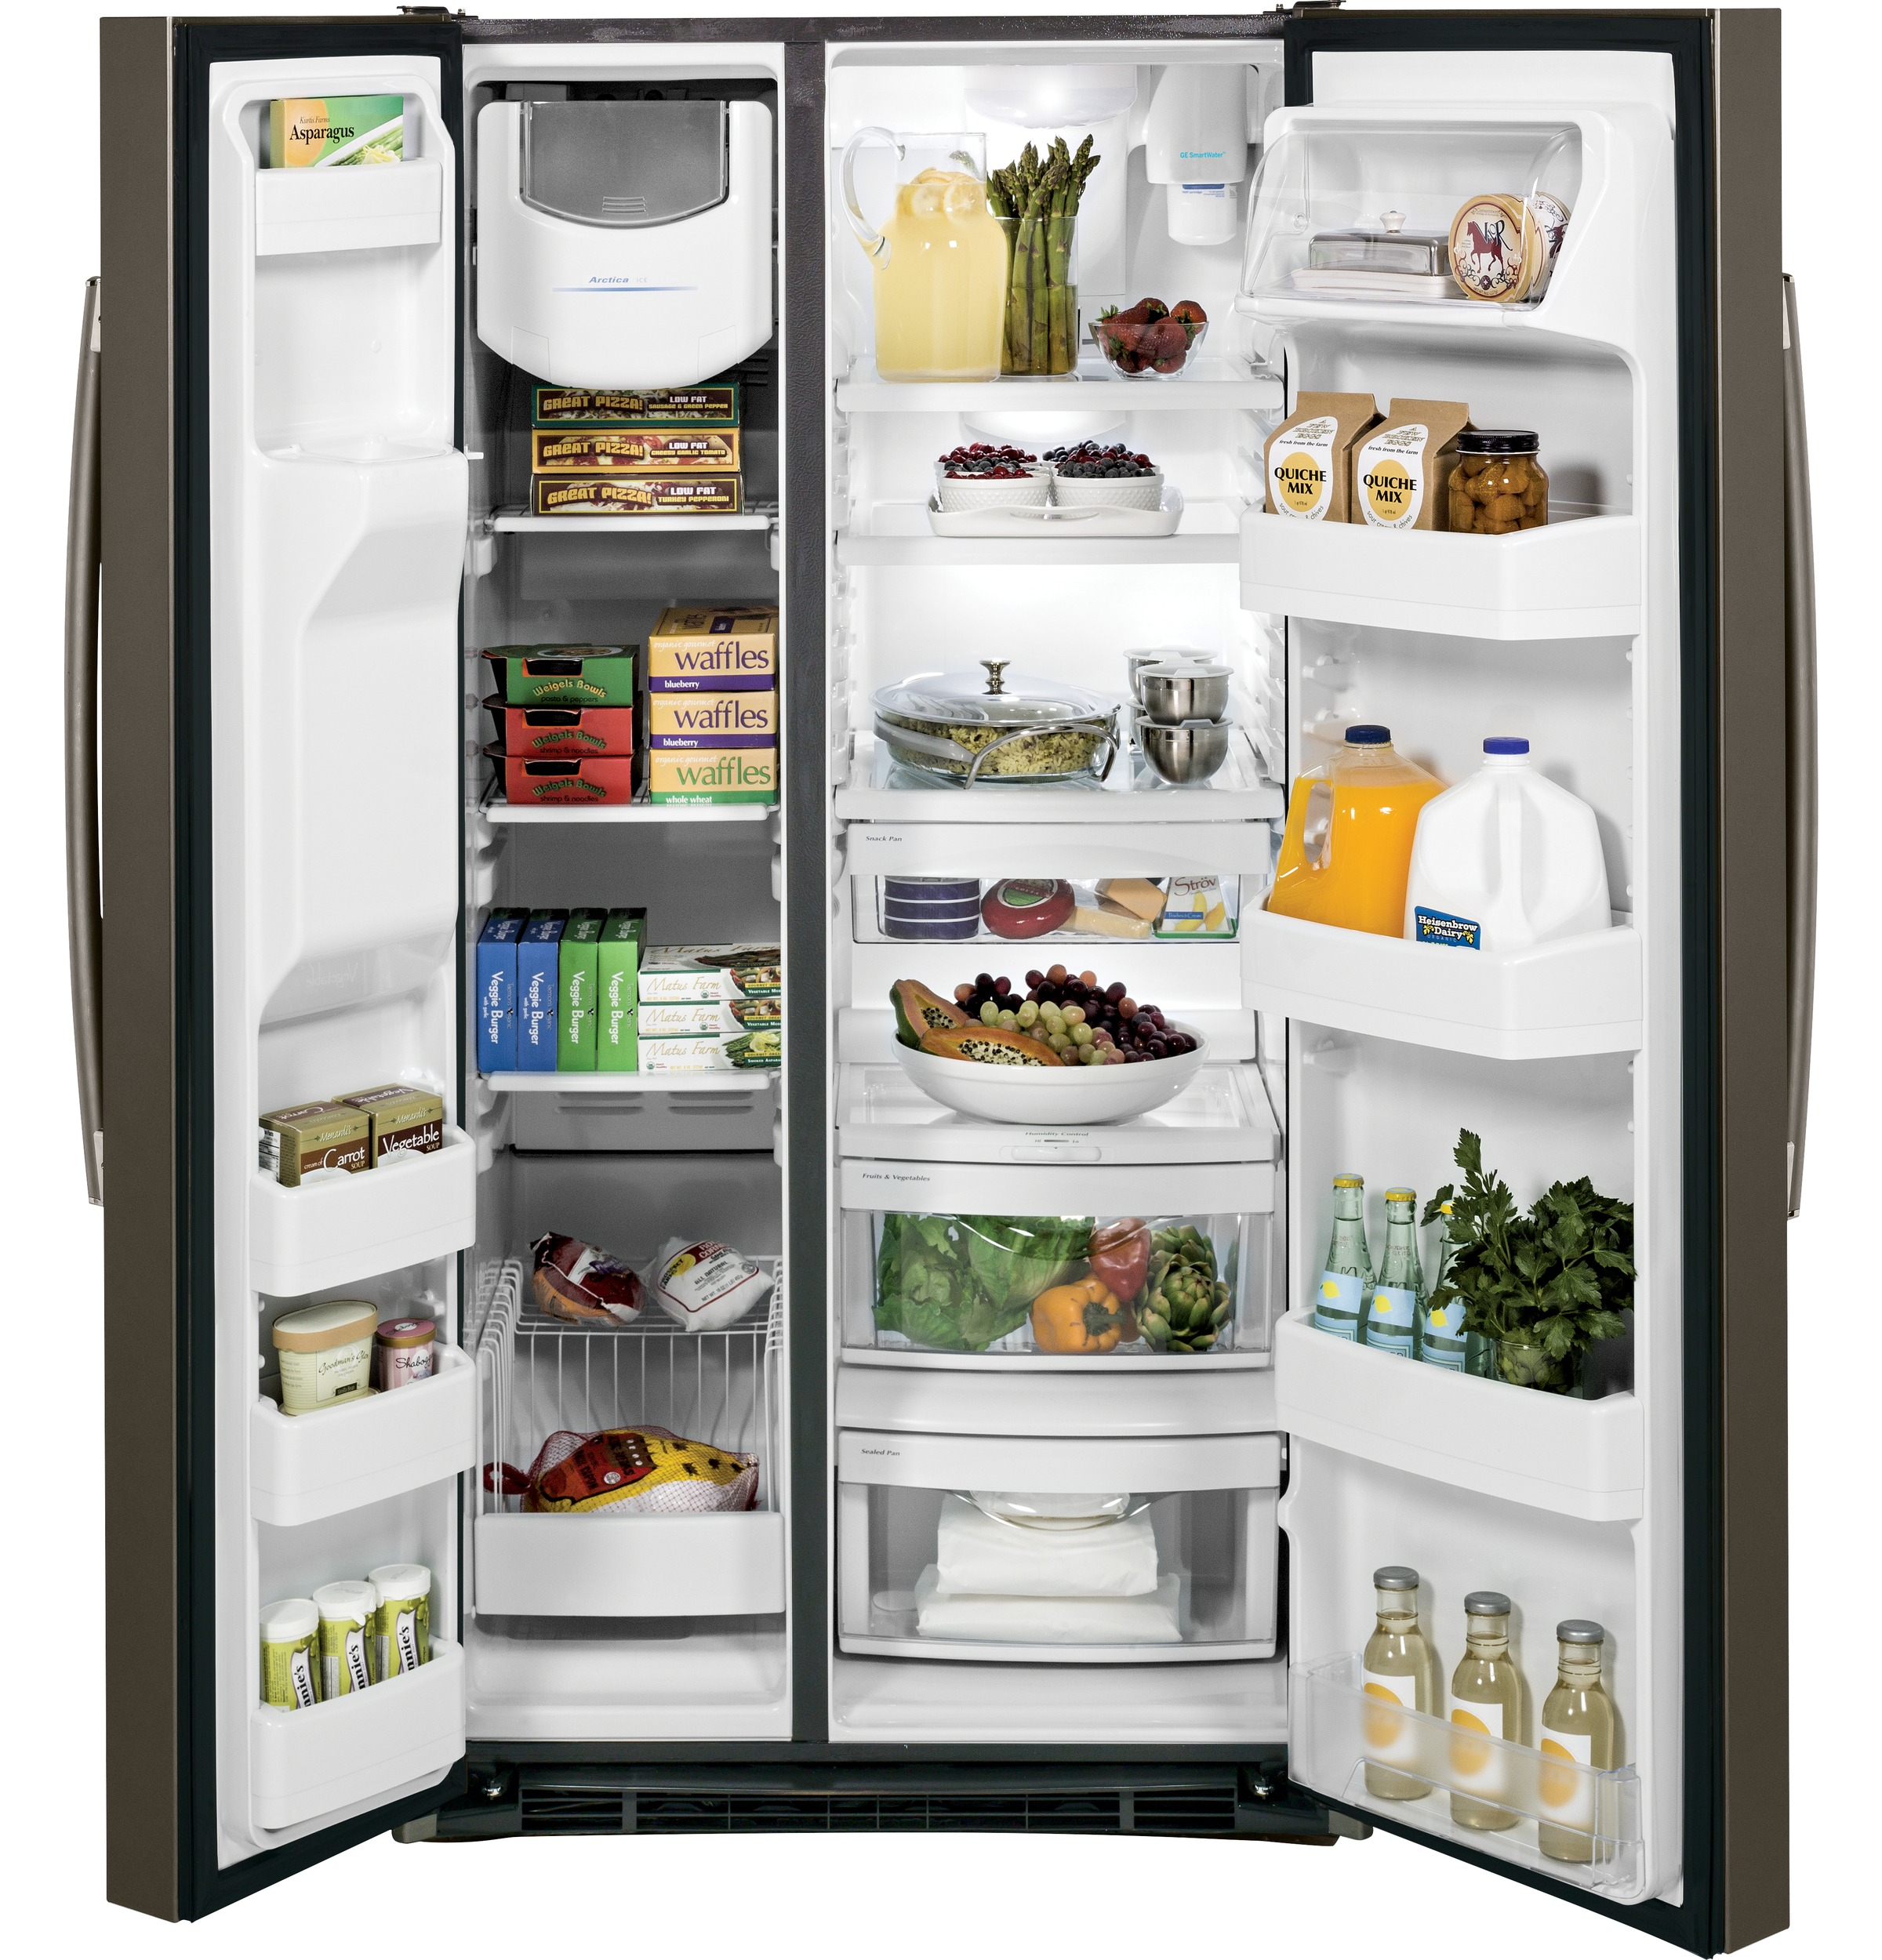 GE Appliances GSS25GMHES 25.4 cu. ft. Side-By-Side Refrigerator - Slate